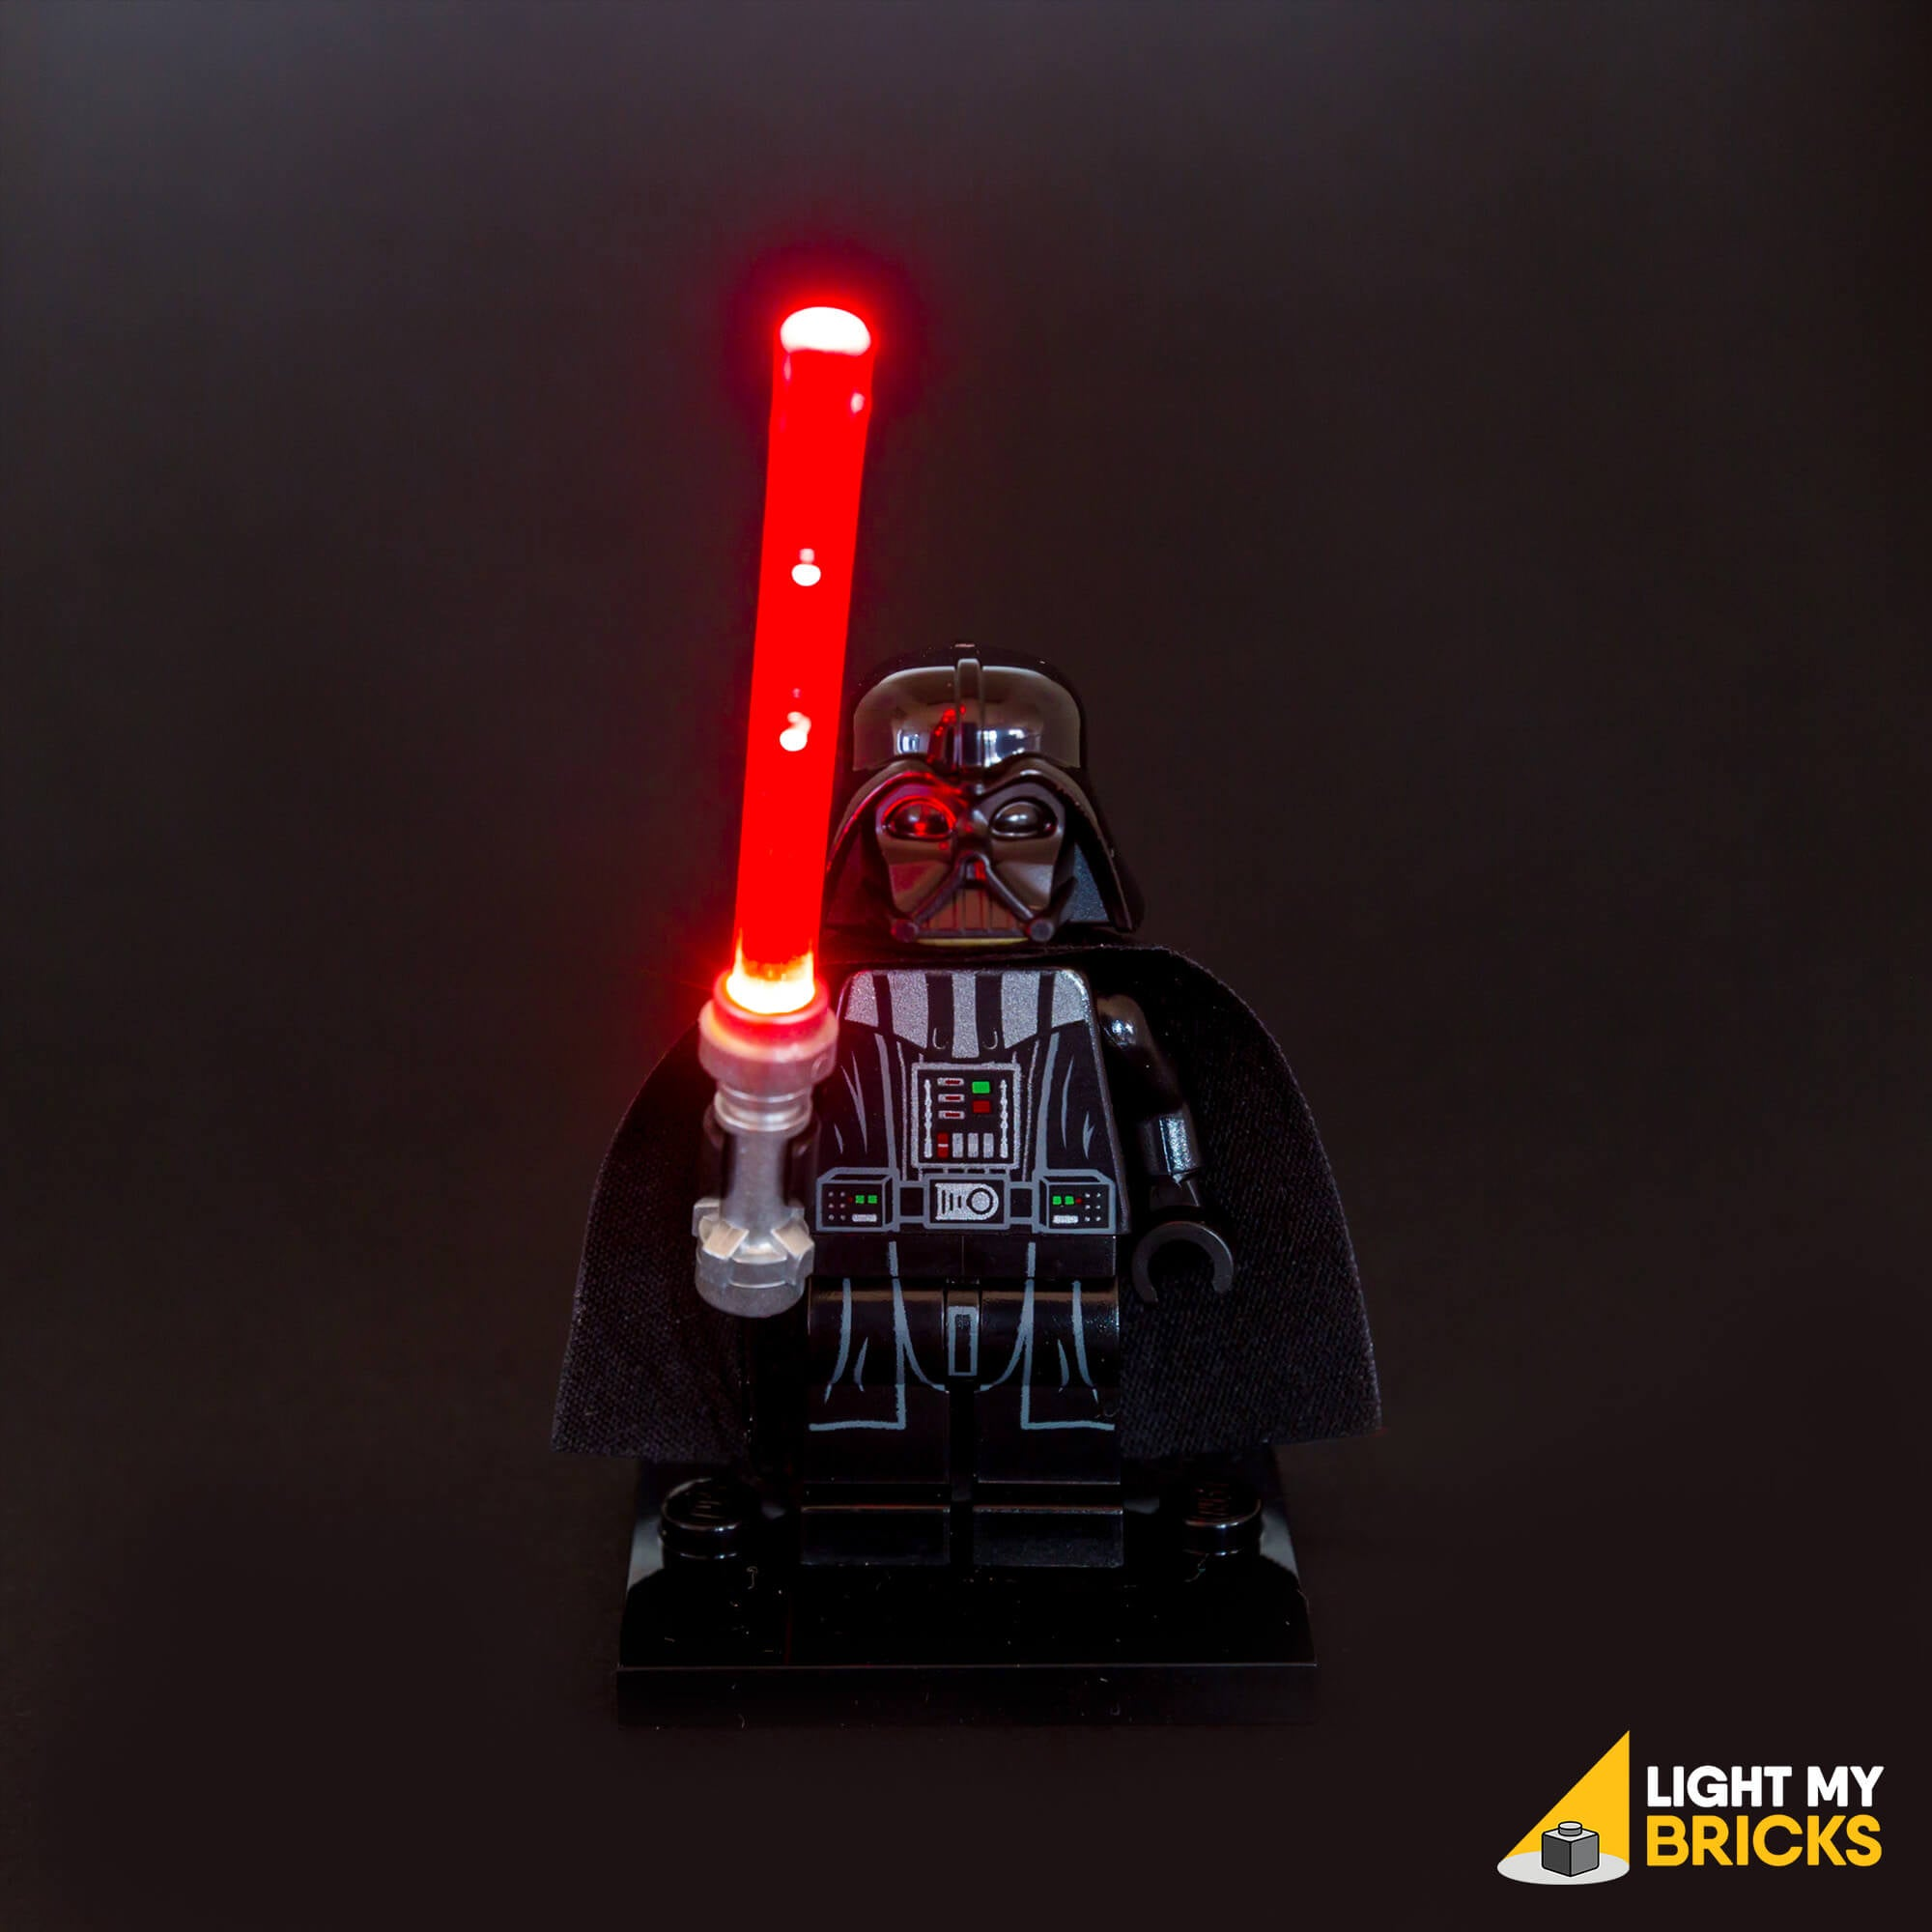 Light My Bricks LEGO Lighting Component - LEGO Lightsaber Red Activated